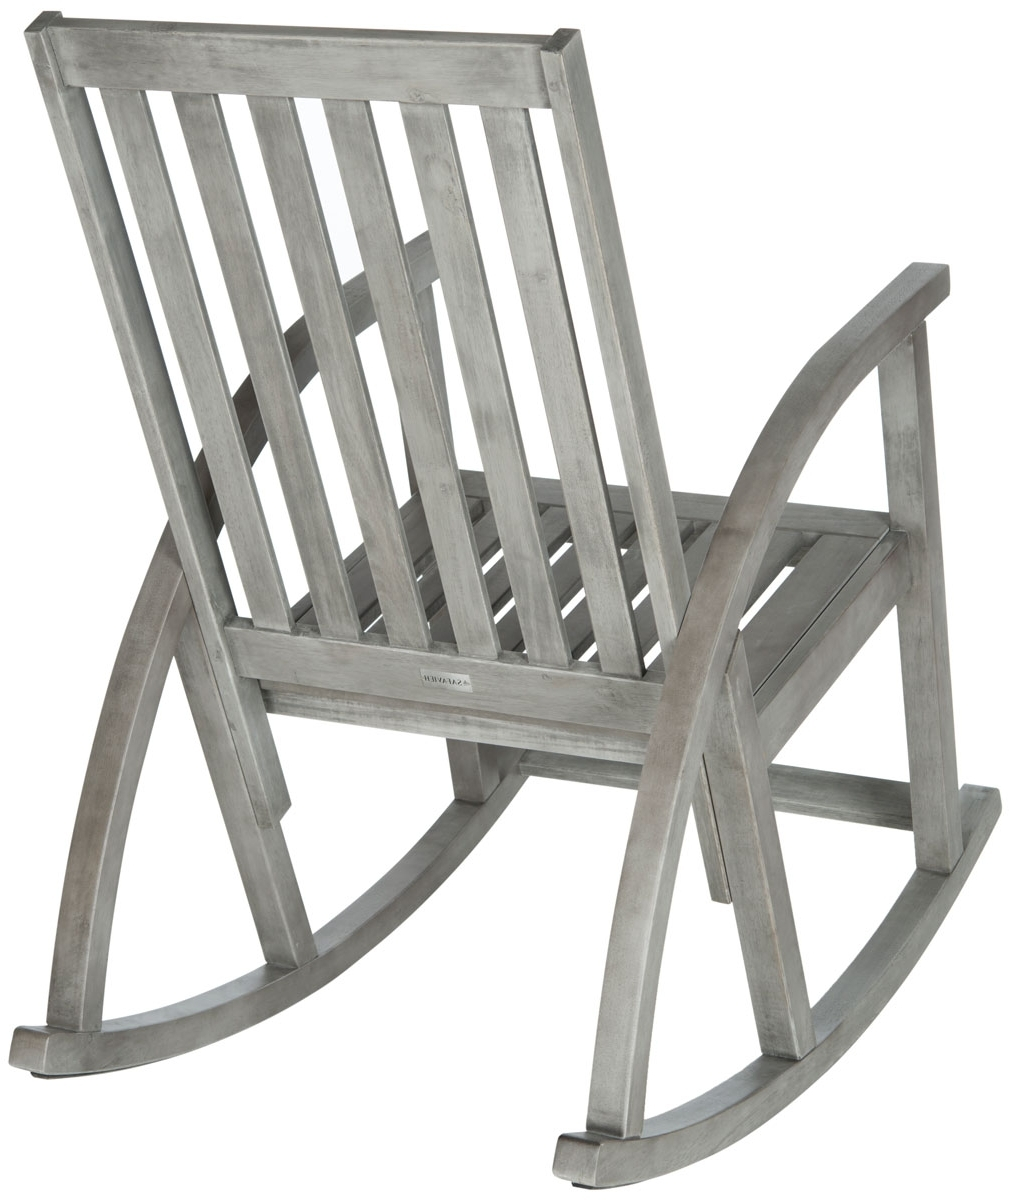 Trendy Outdoor Rocking Chairs Furniture Safavieh Back Gray Chair Zen Wooden Throughout Zen Rocking Chairs (View 11 of 20)